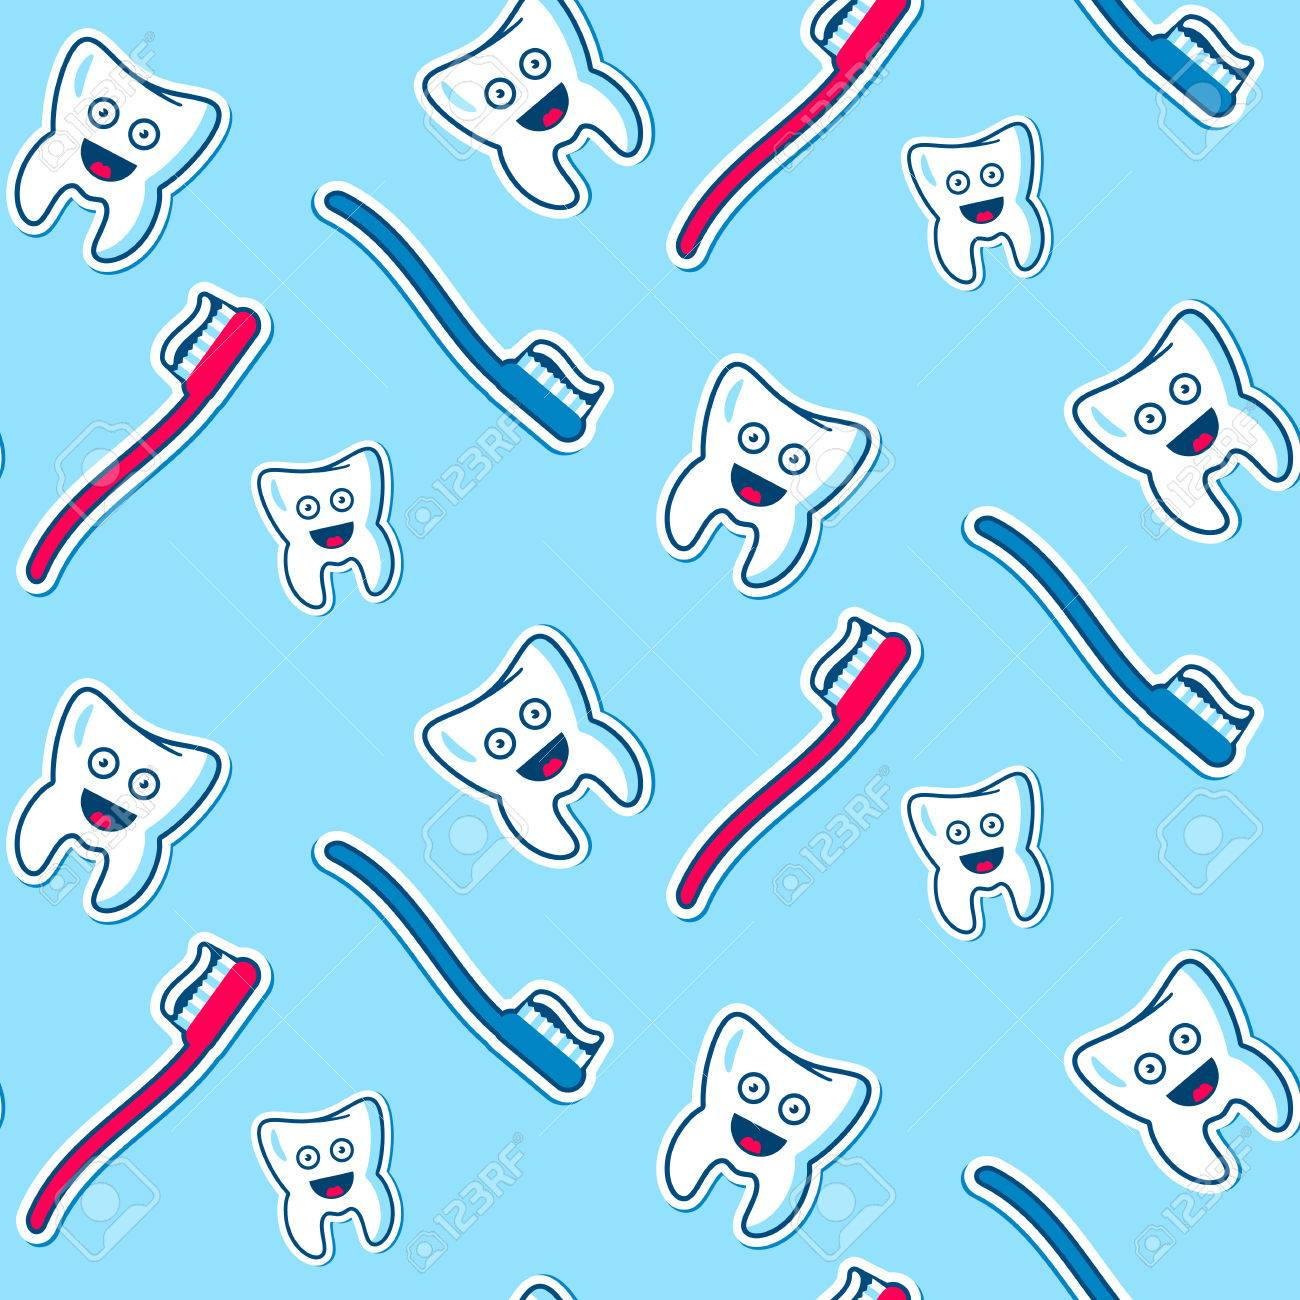 Seamless Vector Pattern With The Health Joy Teeth Blue And Red Royalty Free Cliparts Vectors And Stock Illustration Image 40949598